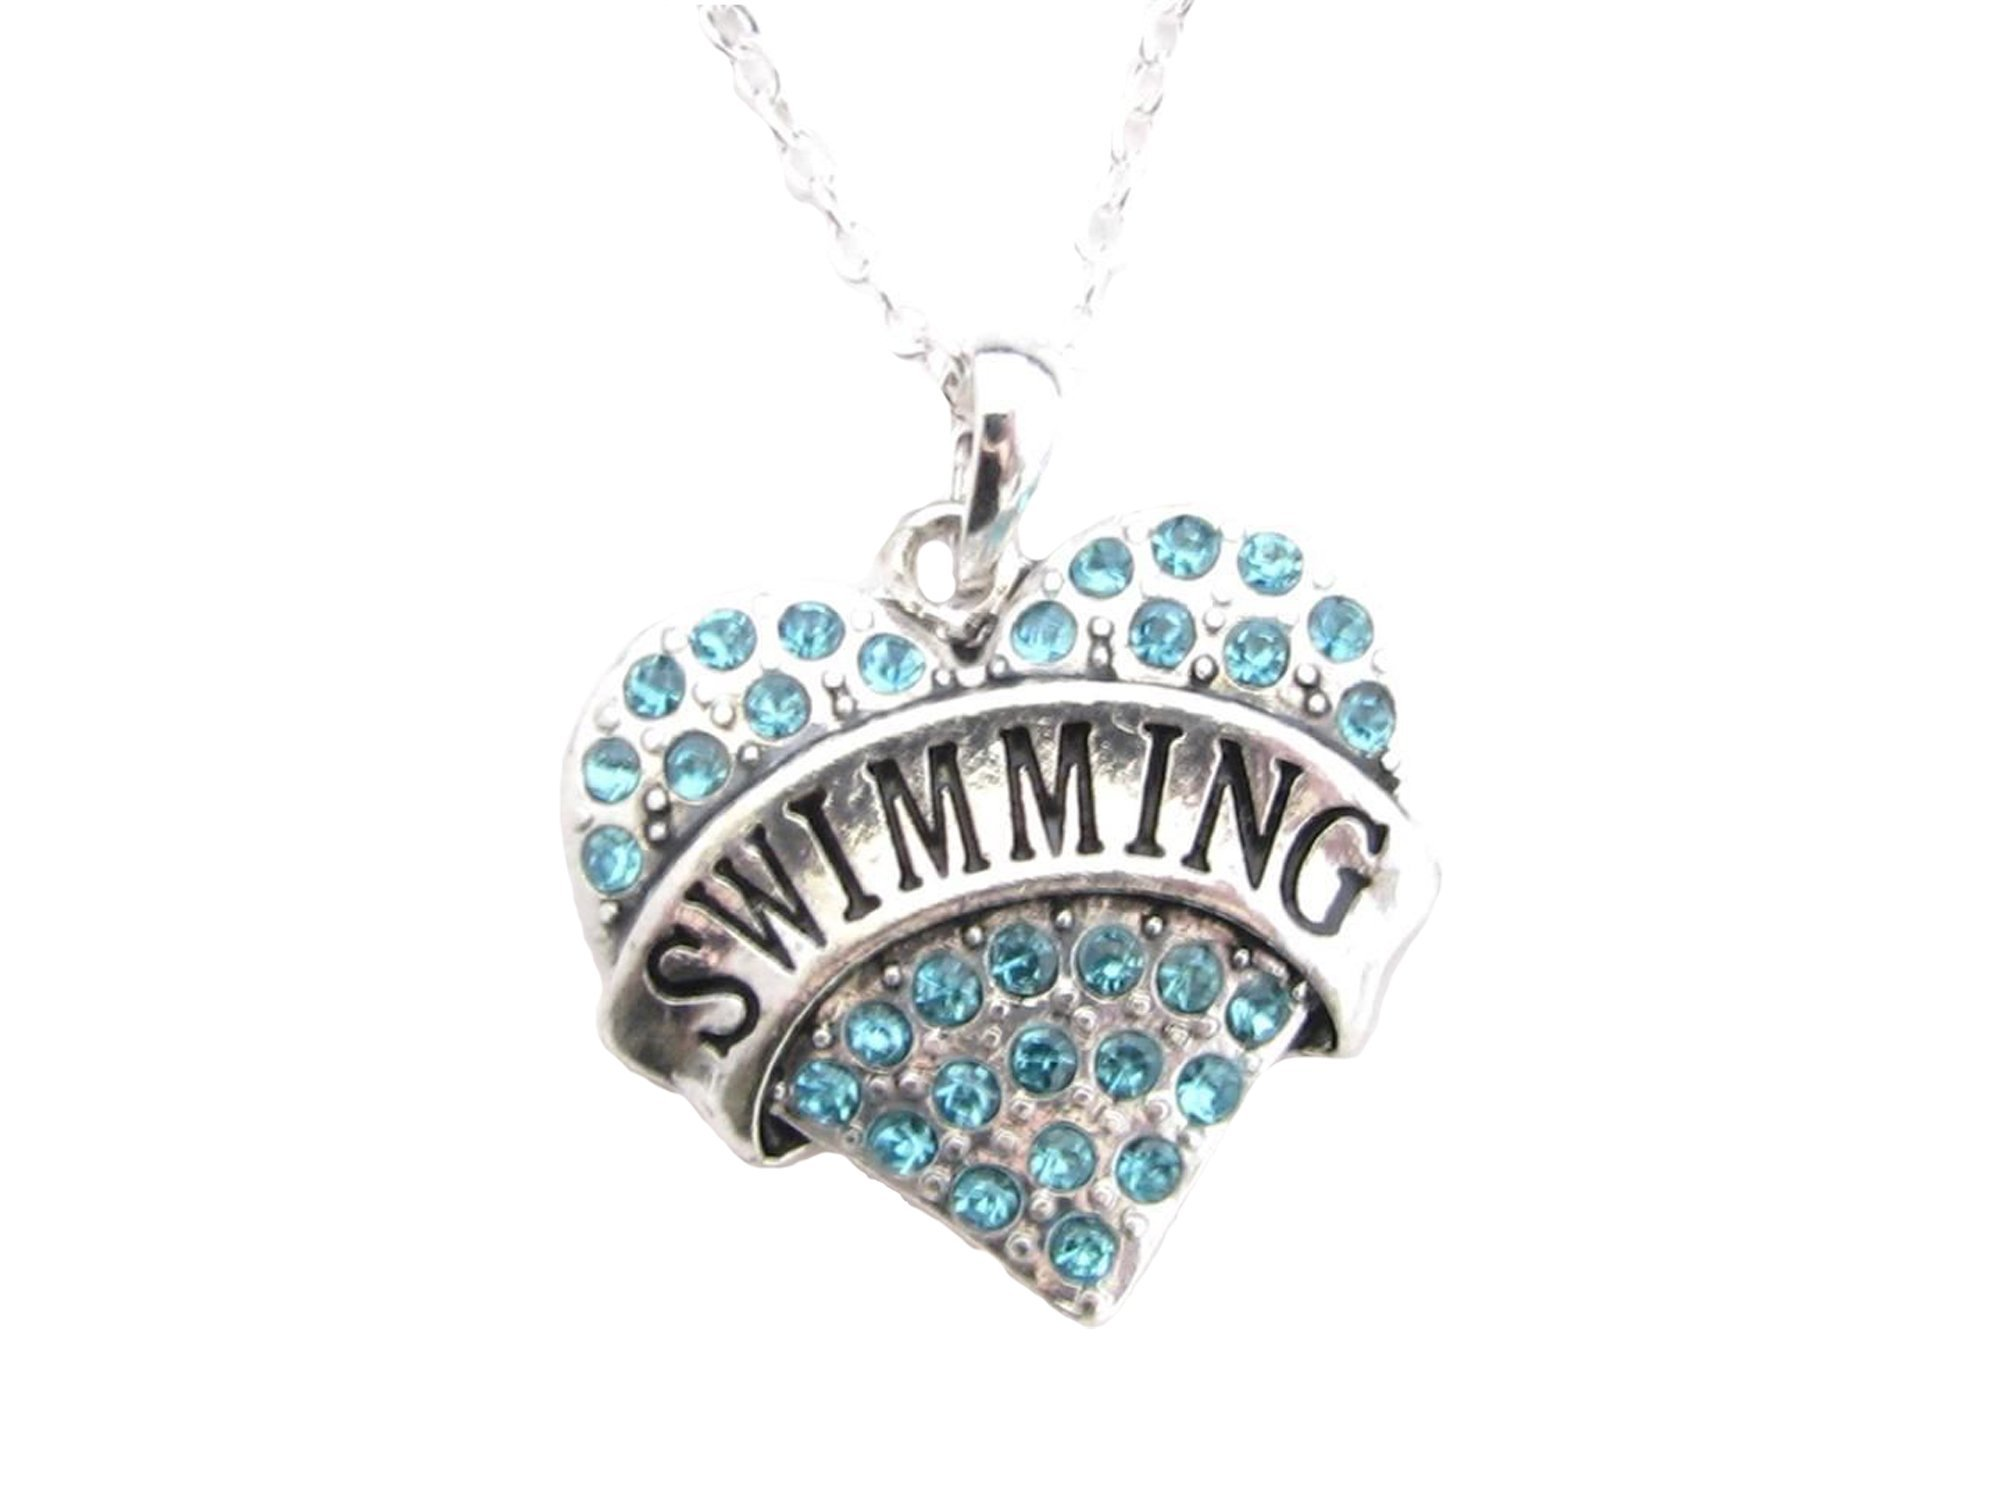 Swimming Silver Chain Necklace Blue Crystal Heart Pendant Jewelry Swimmer Swim